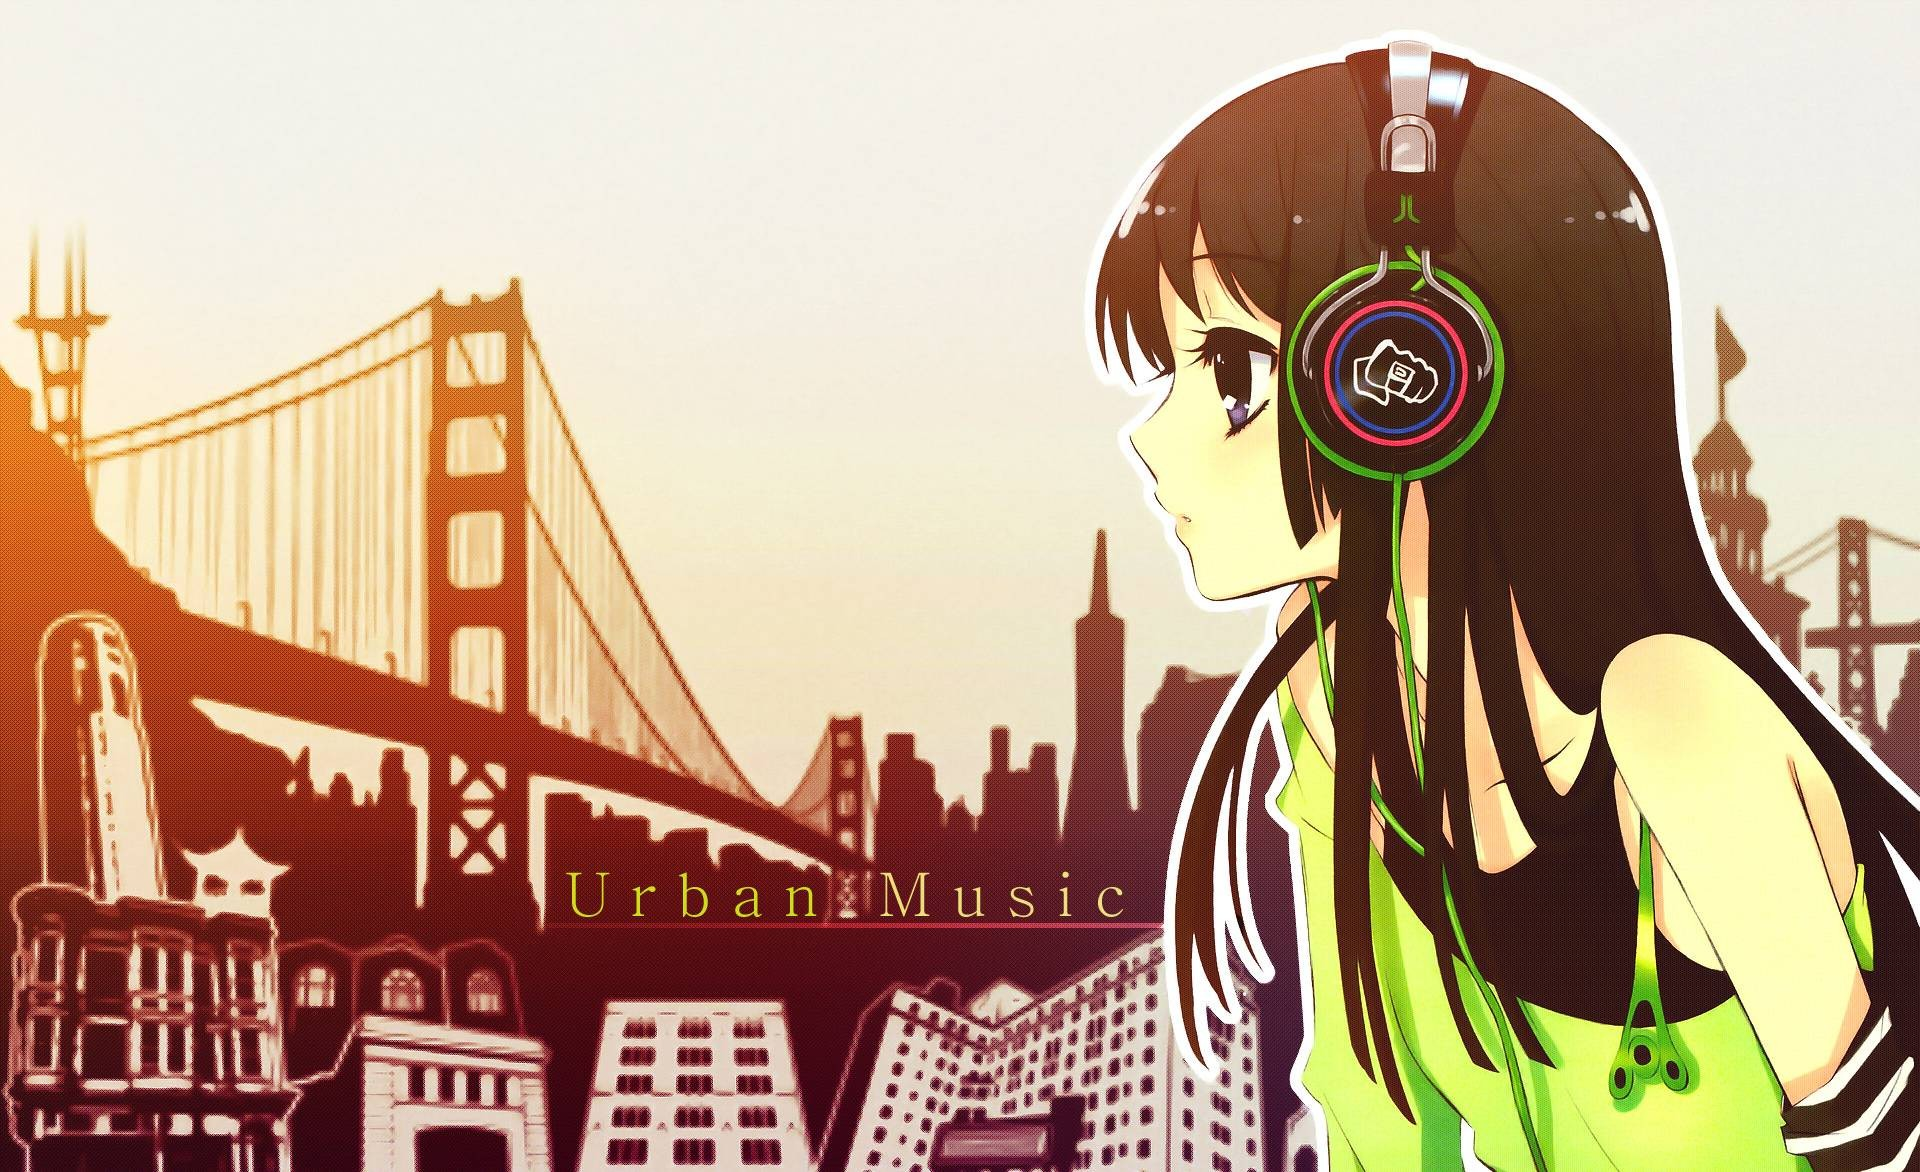 Anime Music Wallpaper 1 Download Free Awesome Backgrounds For